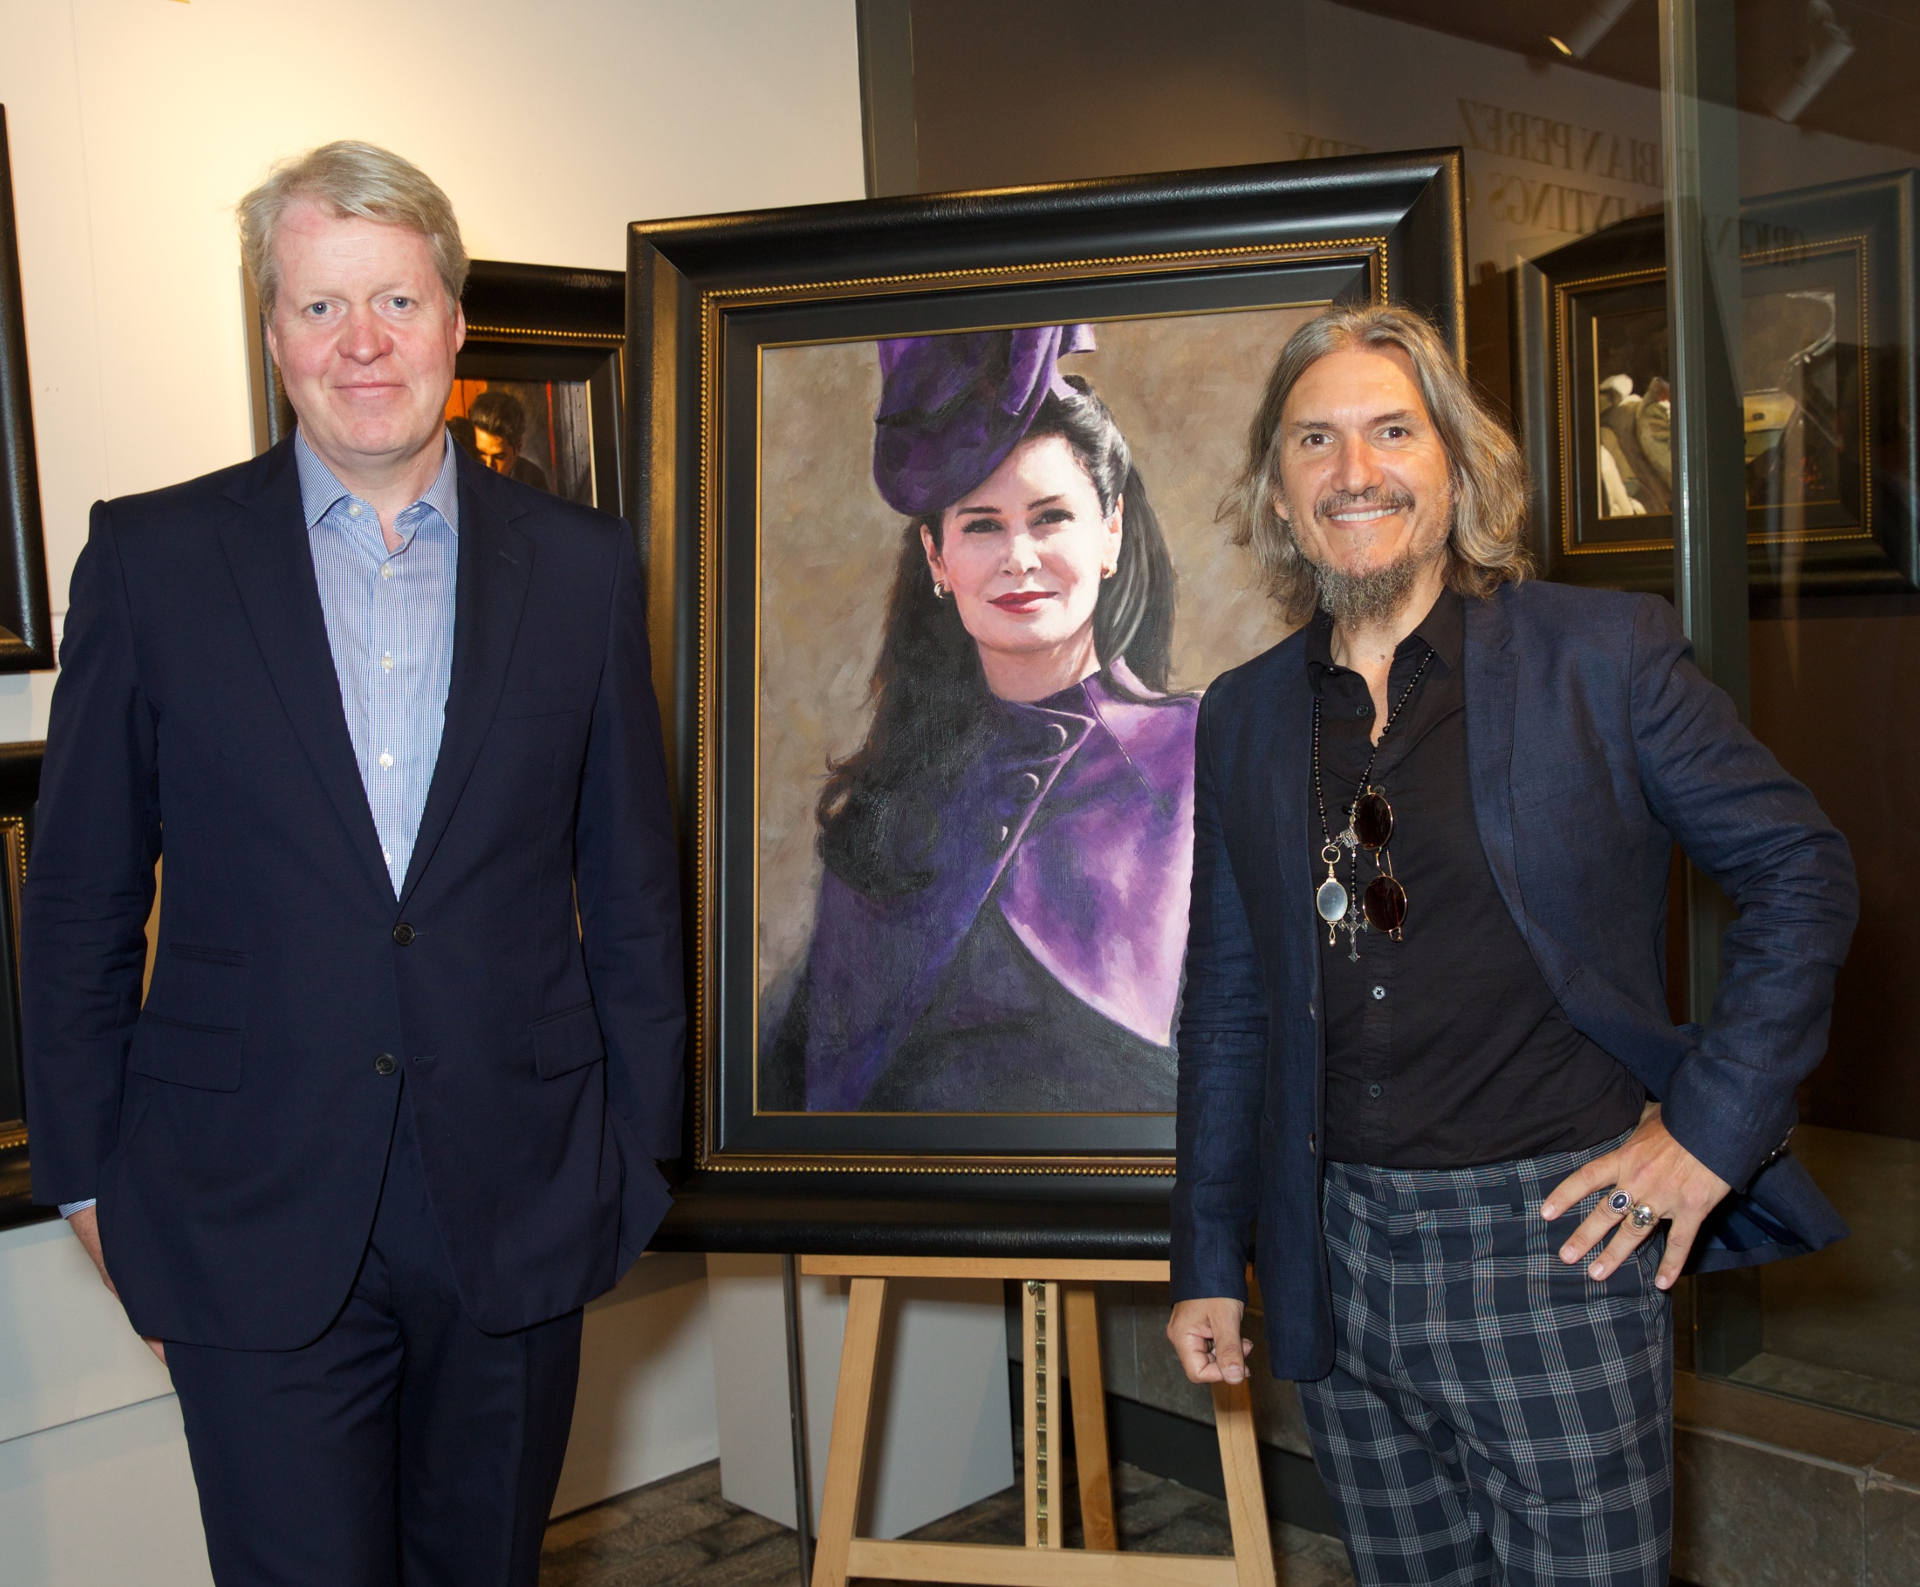 Lord Spencer standing in front of Lady Spencer portrait by Fabian Perez